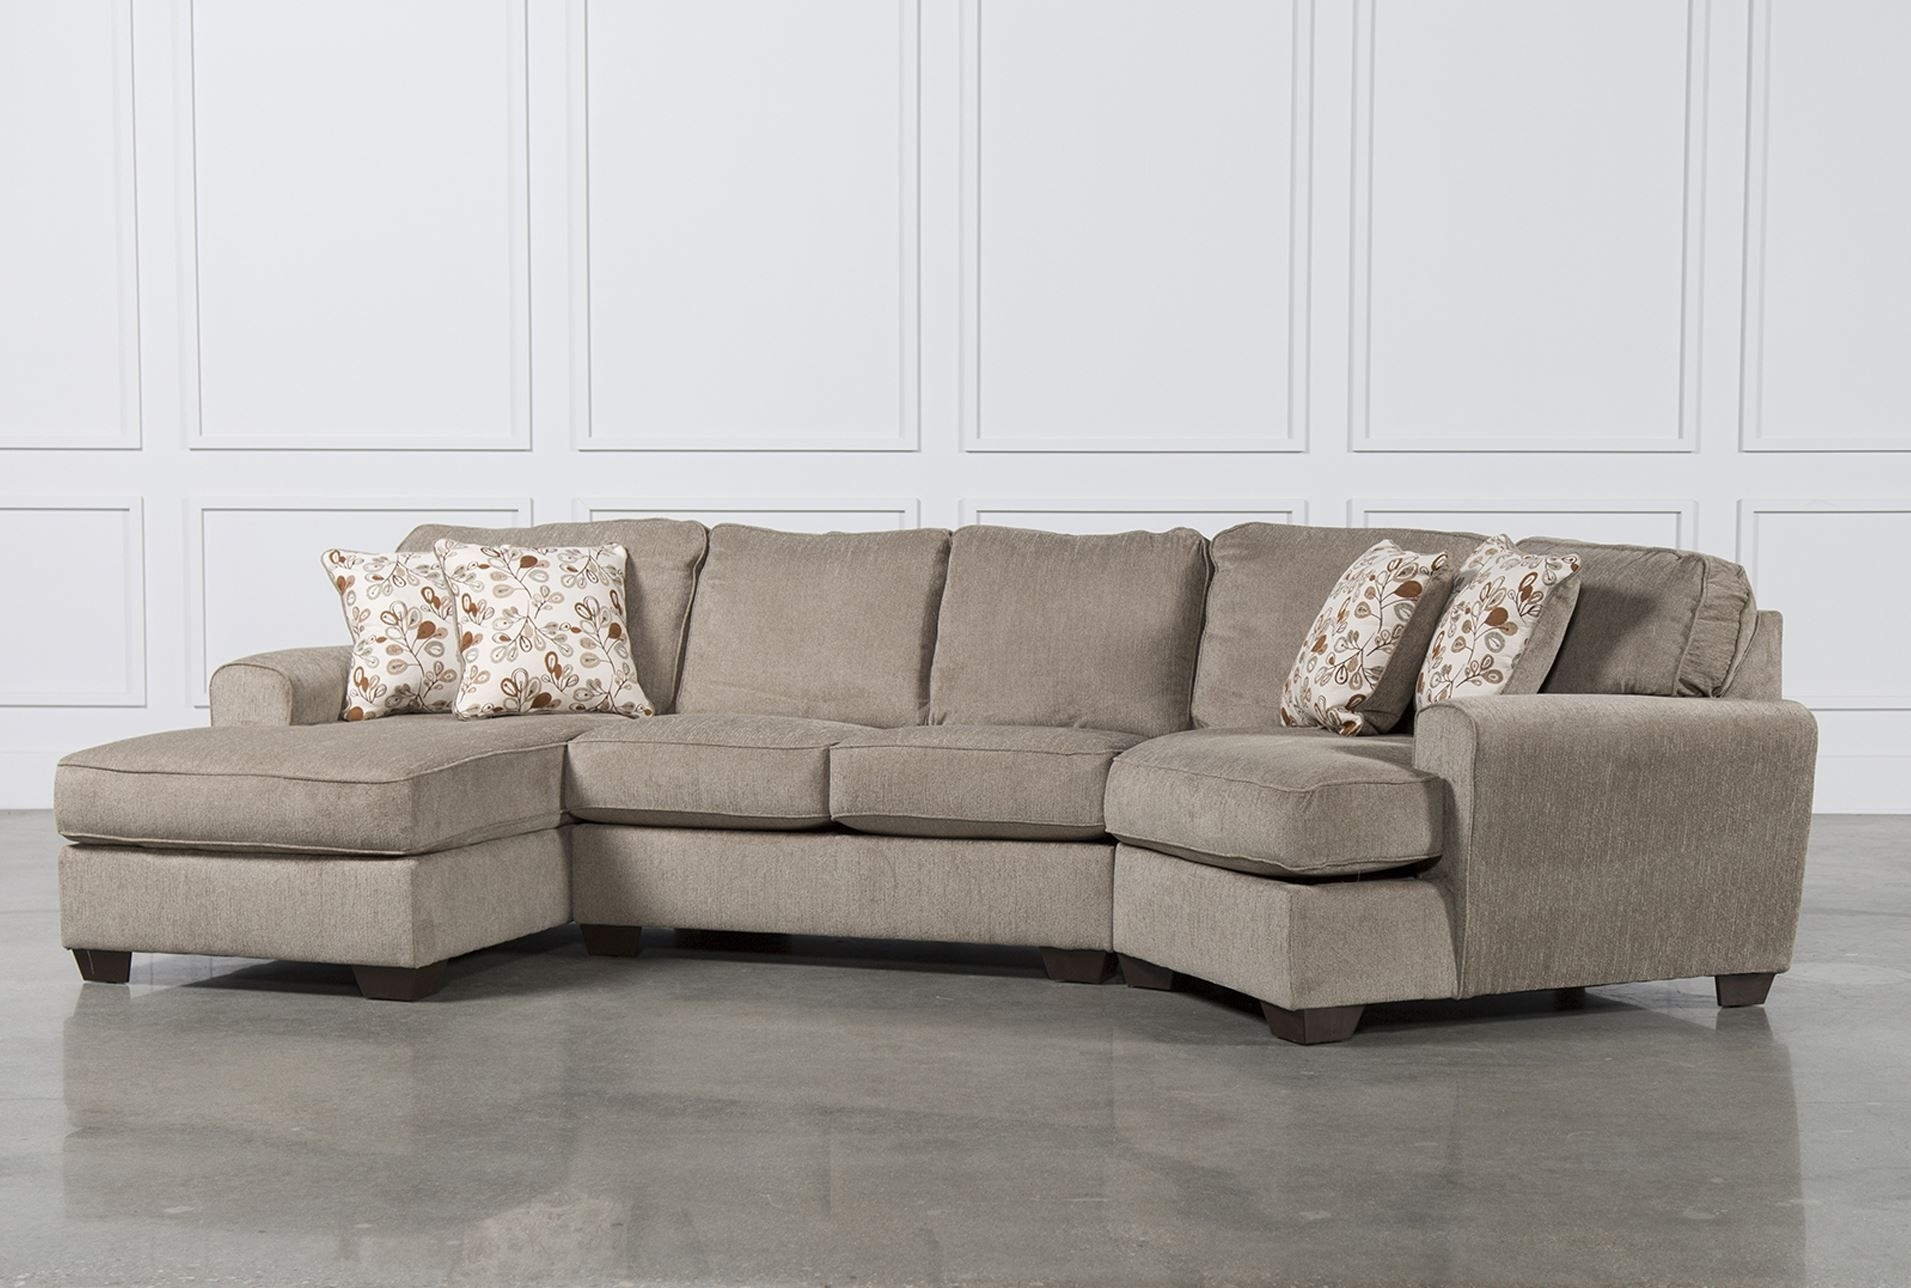 Patola Park 3 Piece Cuddler Sectional W/laf Corner Chaise With Regard To Sierra Down 3 Piece Sectionals With Laf Chaise (Image 20 of 25)